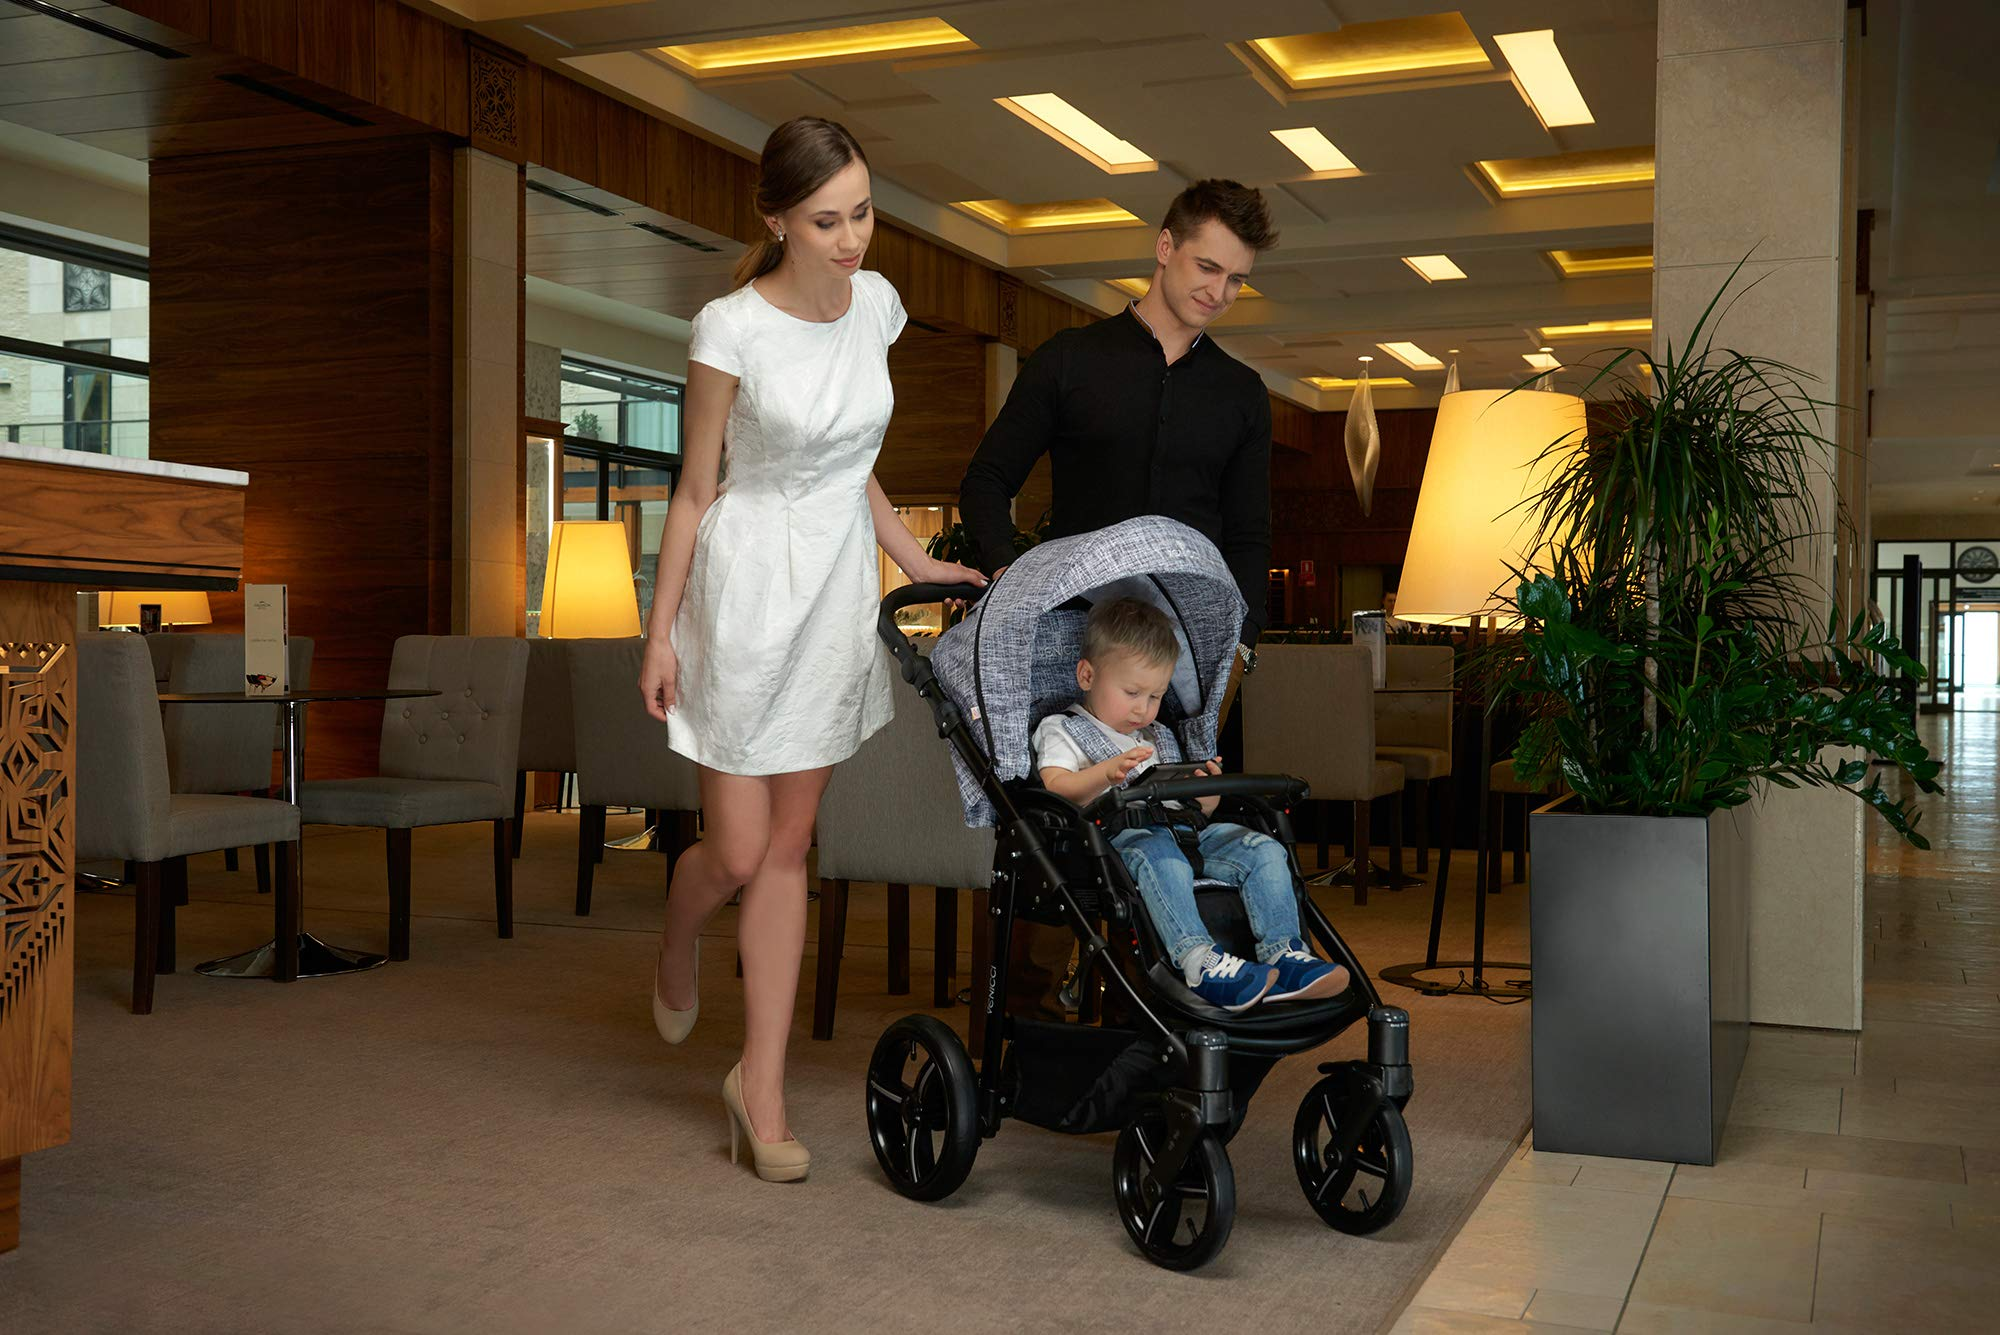 Venicci Shadow 2-in-1 - Fashion Black Travel System Venicci Also includes: Changing bag, Apron, Rain cover, Mosquito Net, Cup holder Carrycot: L 102cm W 61cm H 112 cm Age suitability: From birth to 6 months Seat unit: L 95cm W 61cm H 112cm Age suitability: From 7 to 36 months 4